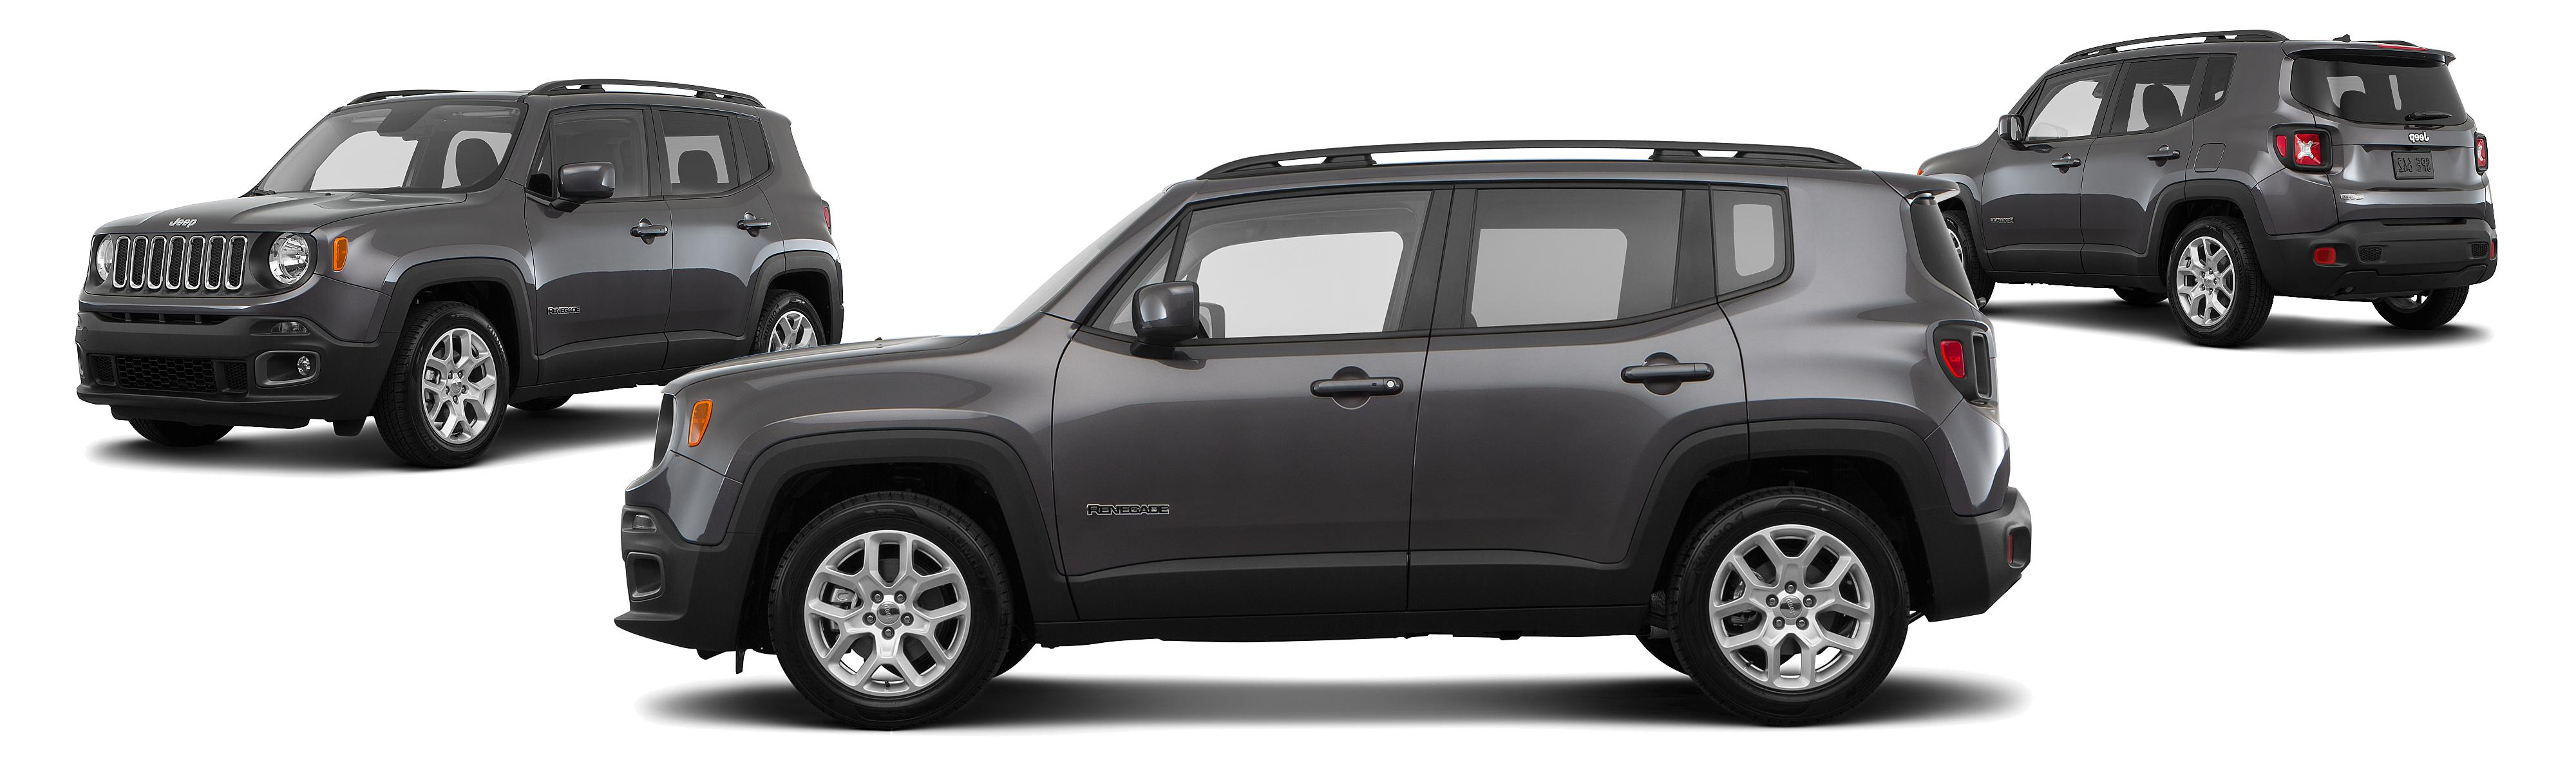 limited car hd wallpaper jeep wallpapers renegade anniversary wide